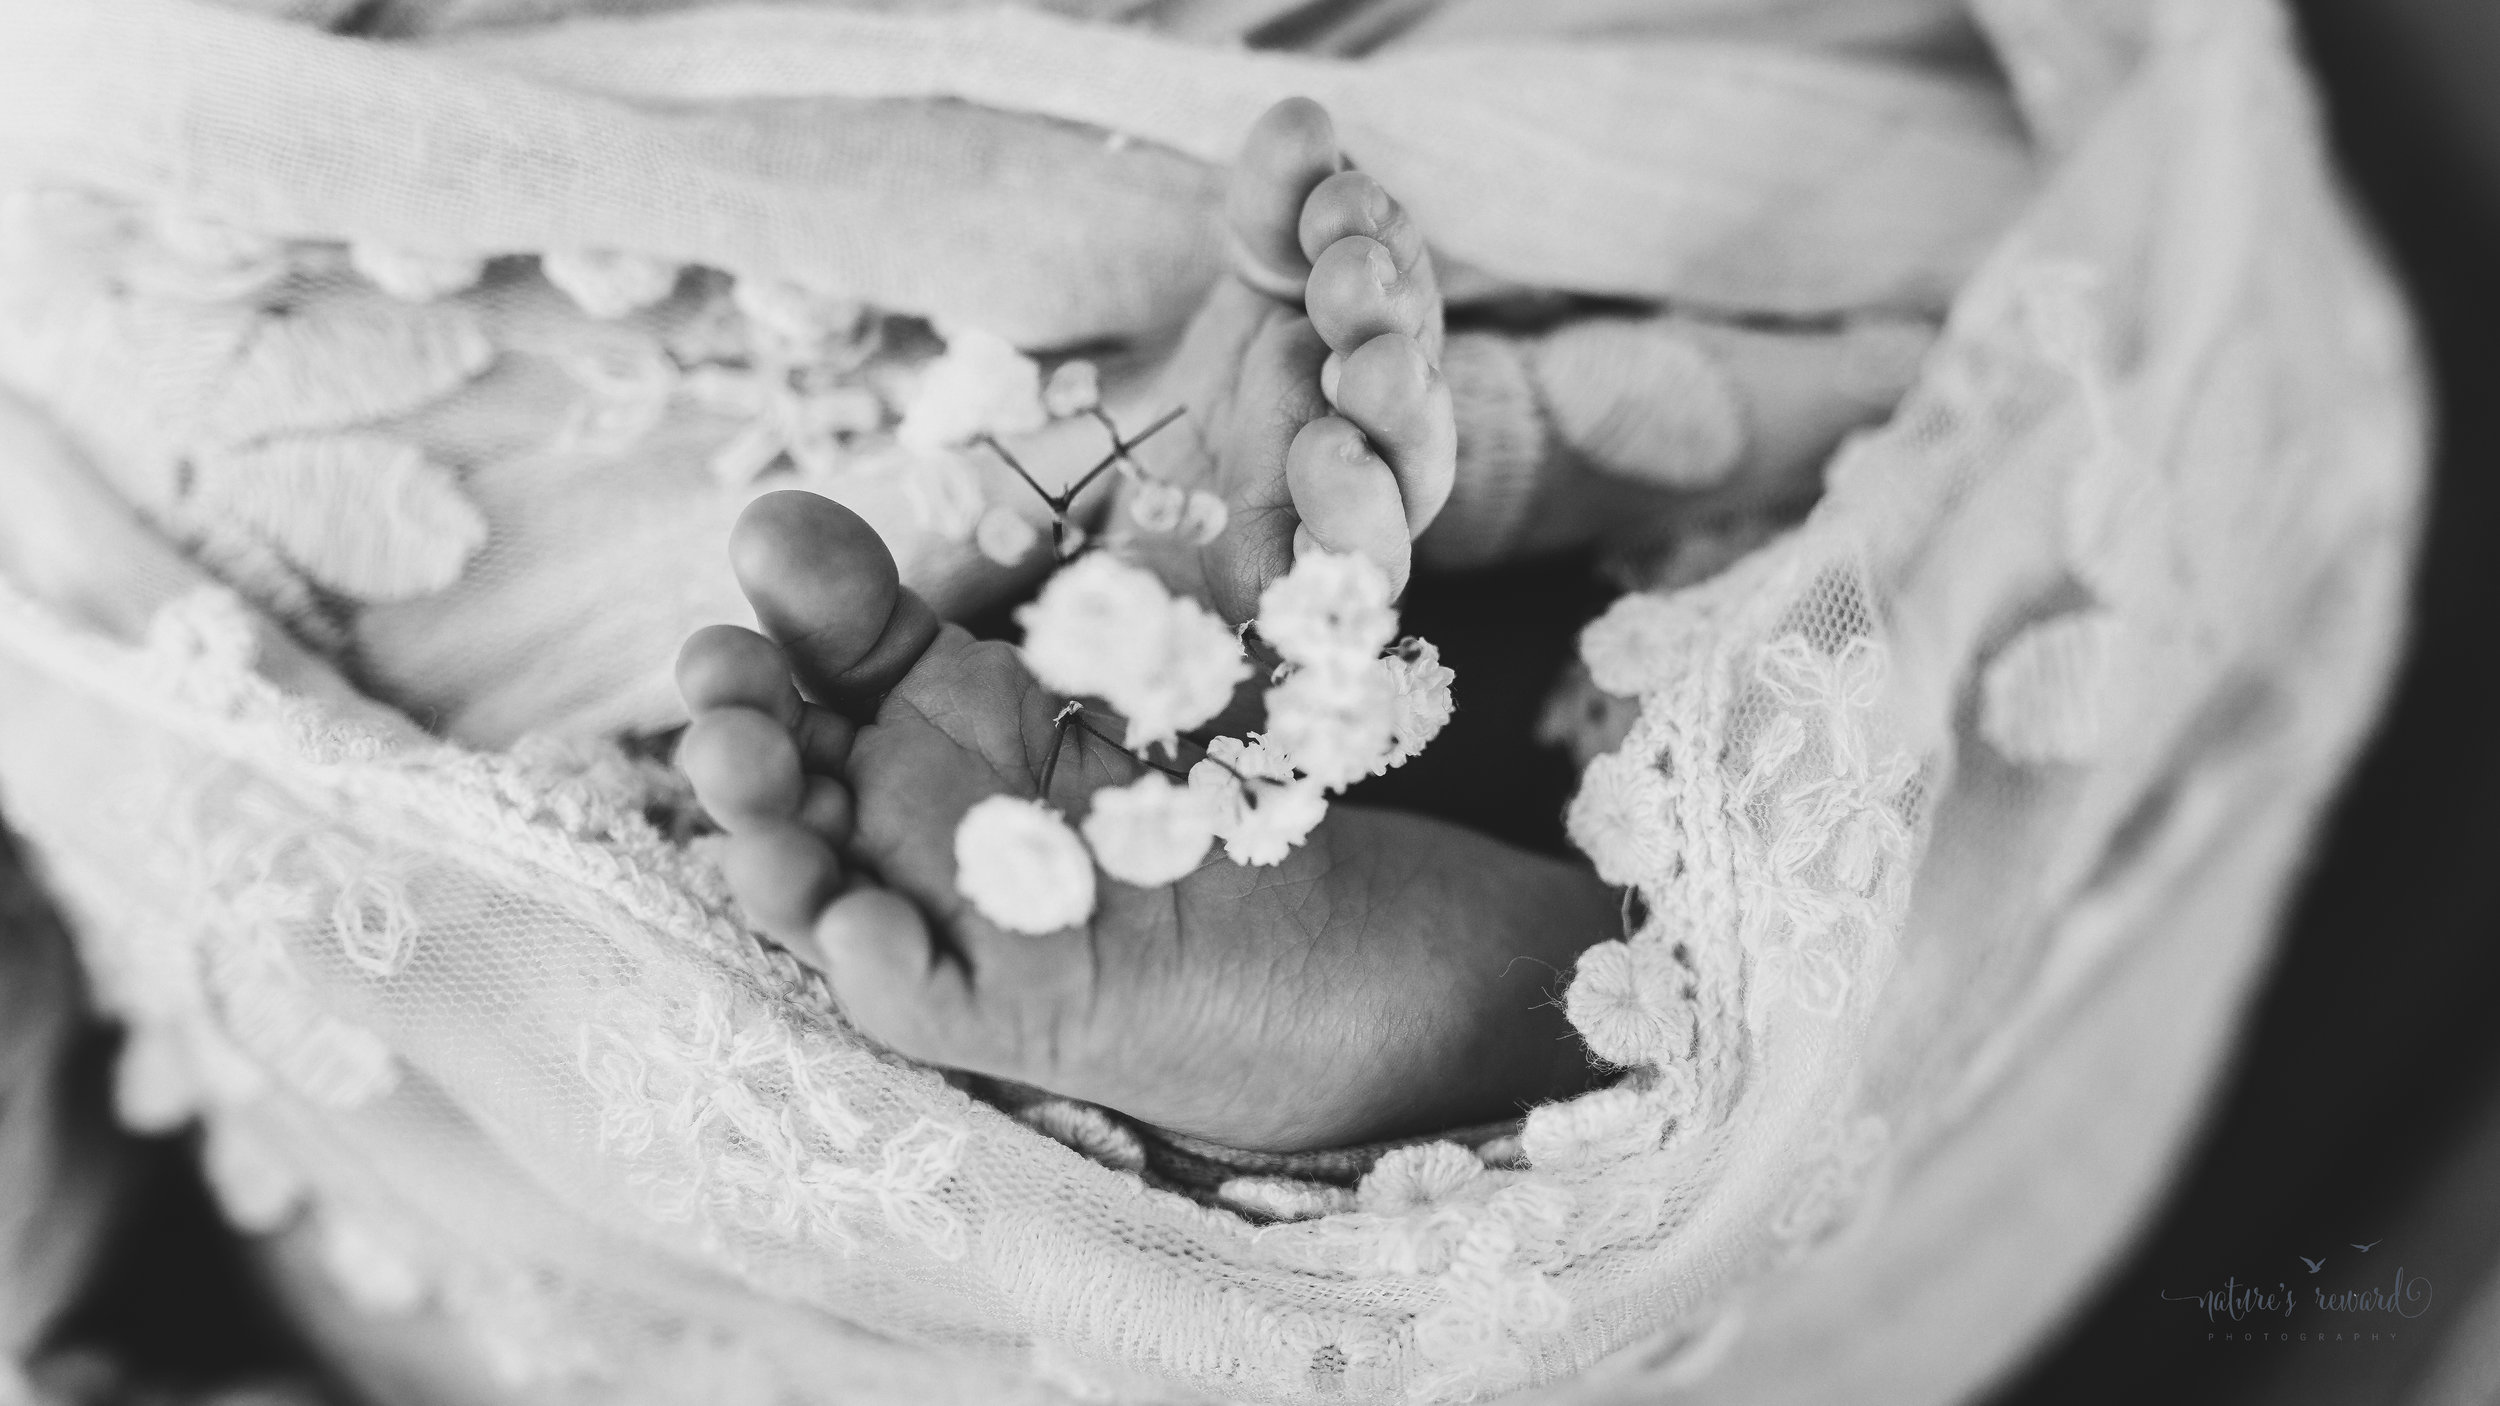 Stunning black and white foot detail baby newborn girl swaddled in pink wearing a white tie back and in a garden surrounded by lush greens and flowers in this portrait by Nature's Reward Photography